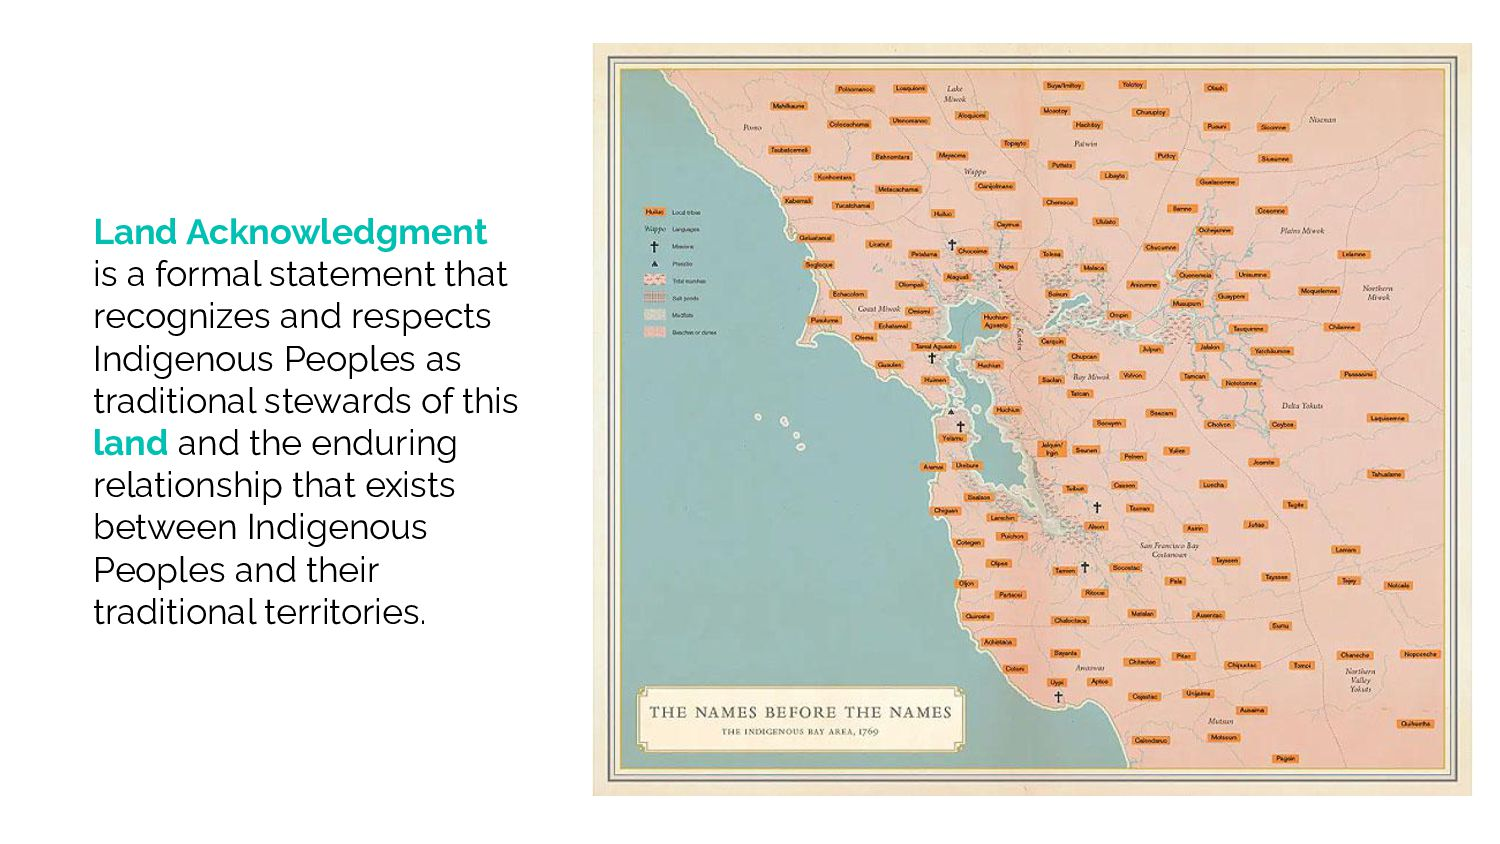 Land Acknowledgement is a formal statement that...